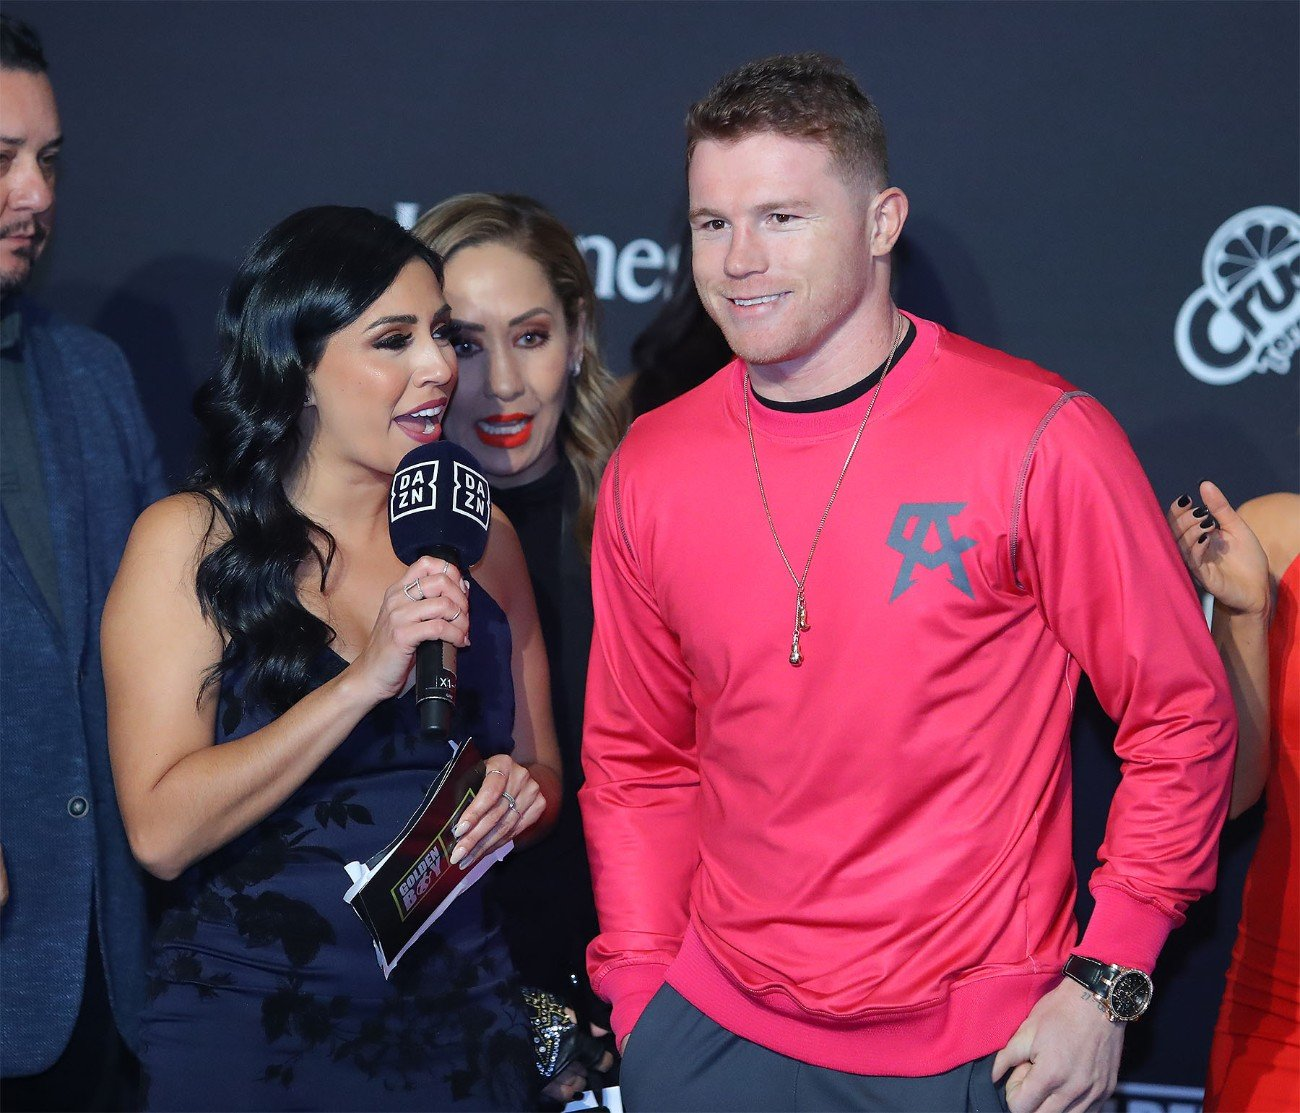 Sergey Kovalev - Saul Canelo Alvarez made his grand arrival at the MGM Grand in Las Vegas, Nevada on Tuesday for his title challenge against WBO light heavyweight champion Sergey Kovalev this Saturday on November 2.